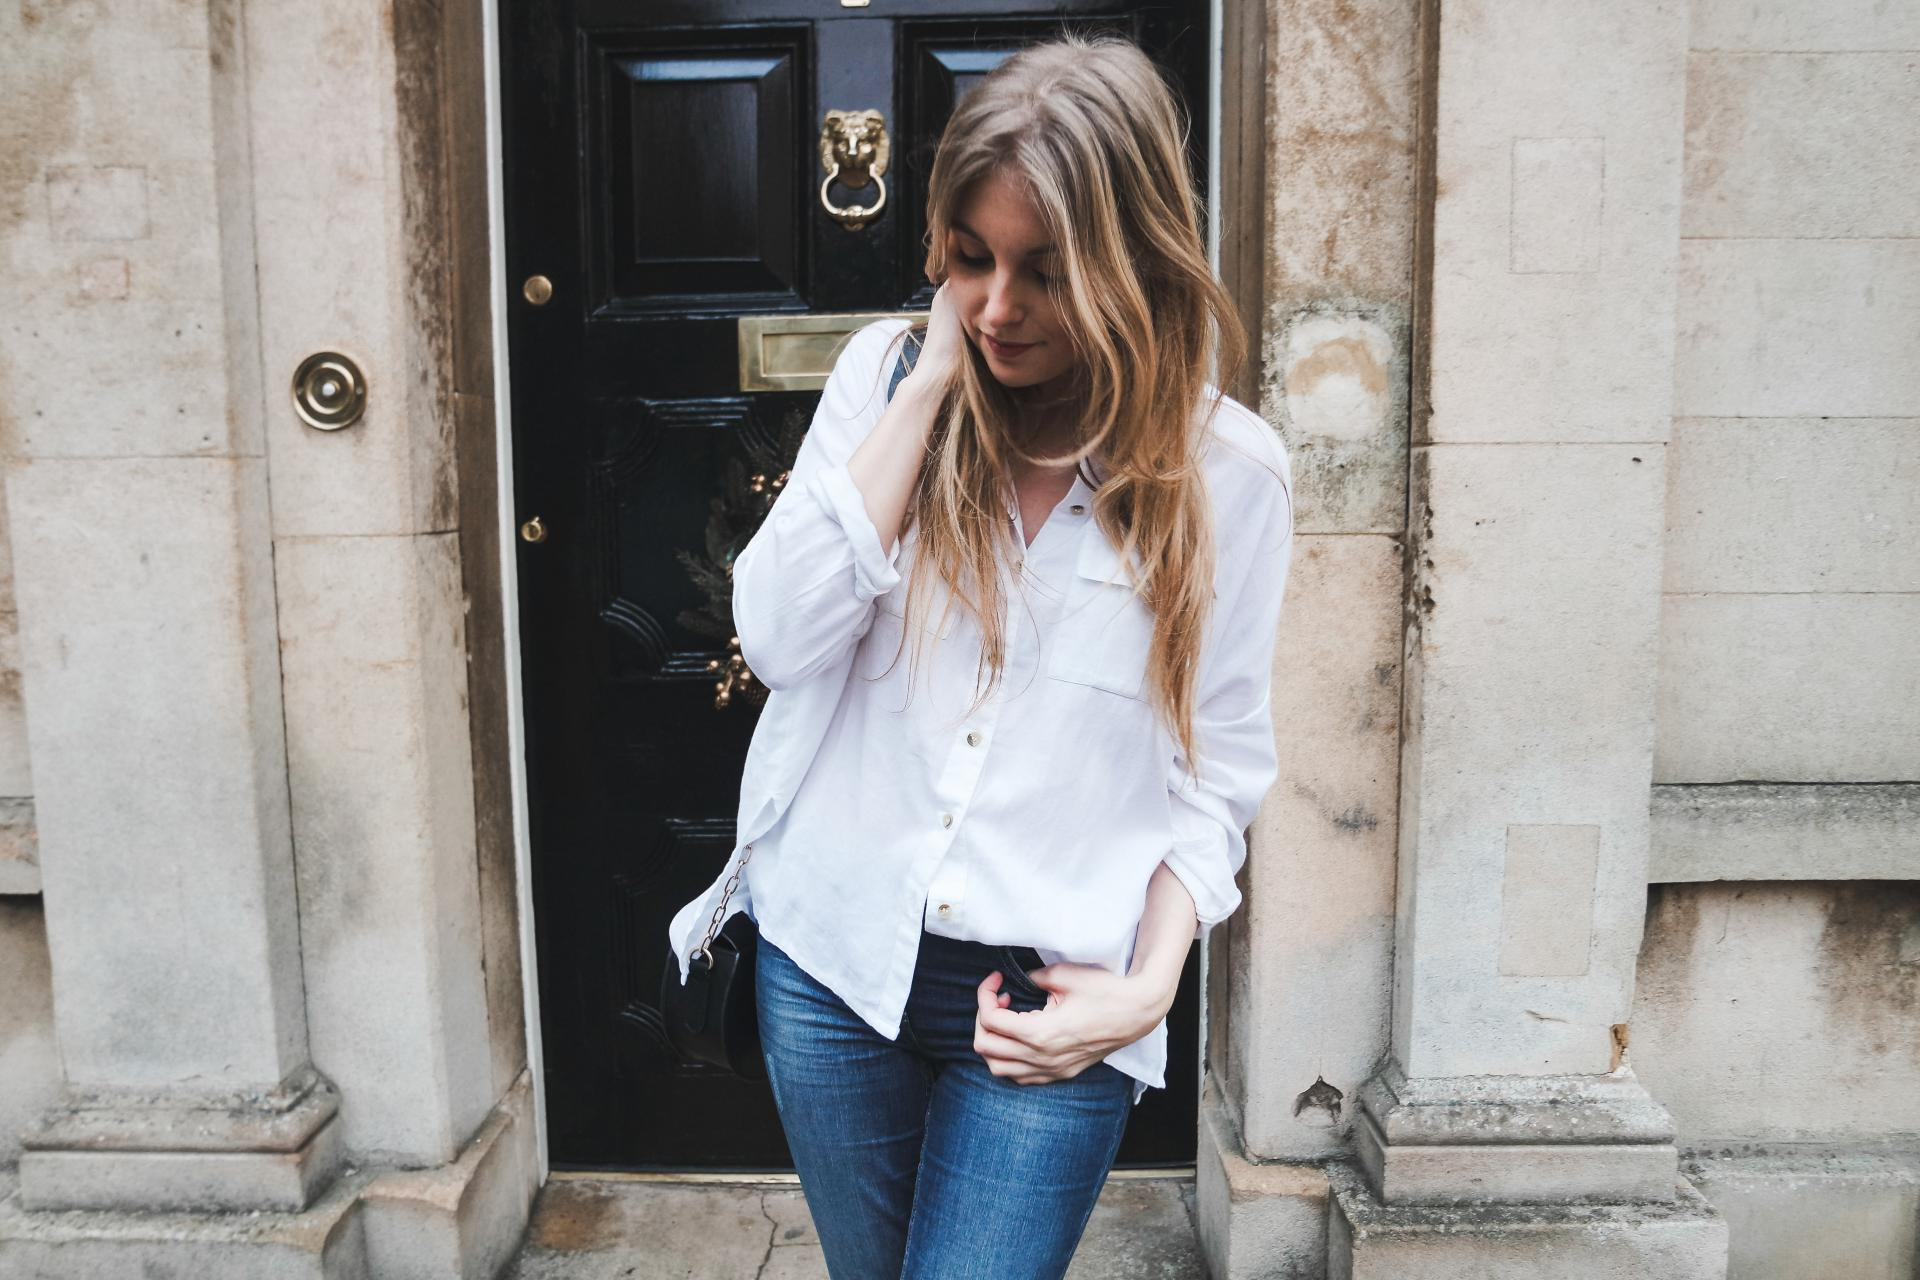 Blue Jeans White Shirt Outfit